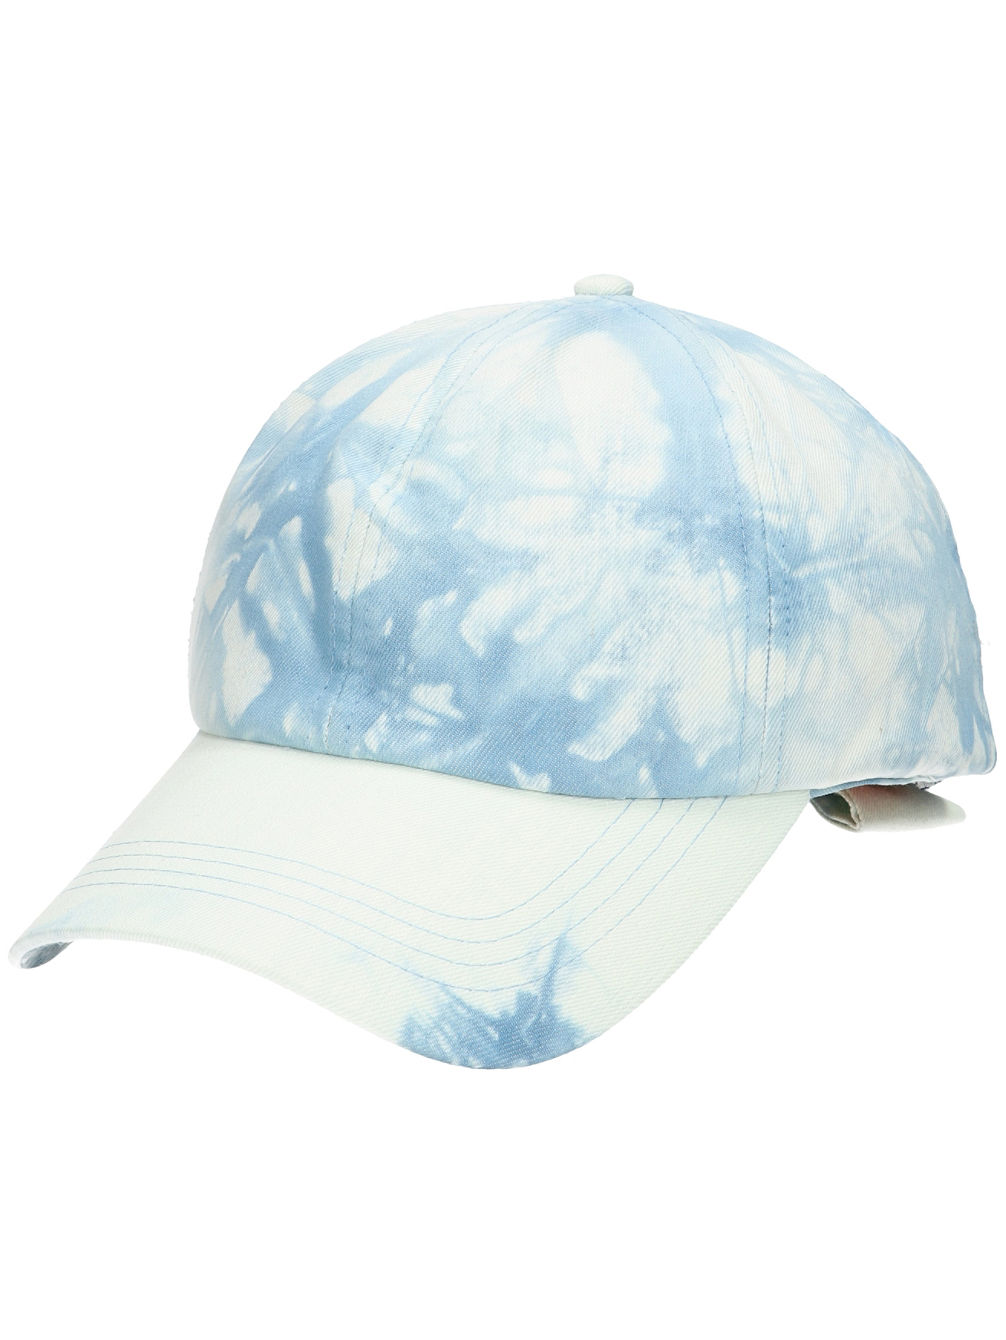 Up In The Air Dad Hat Cap